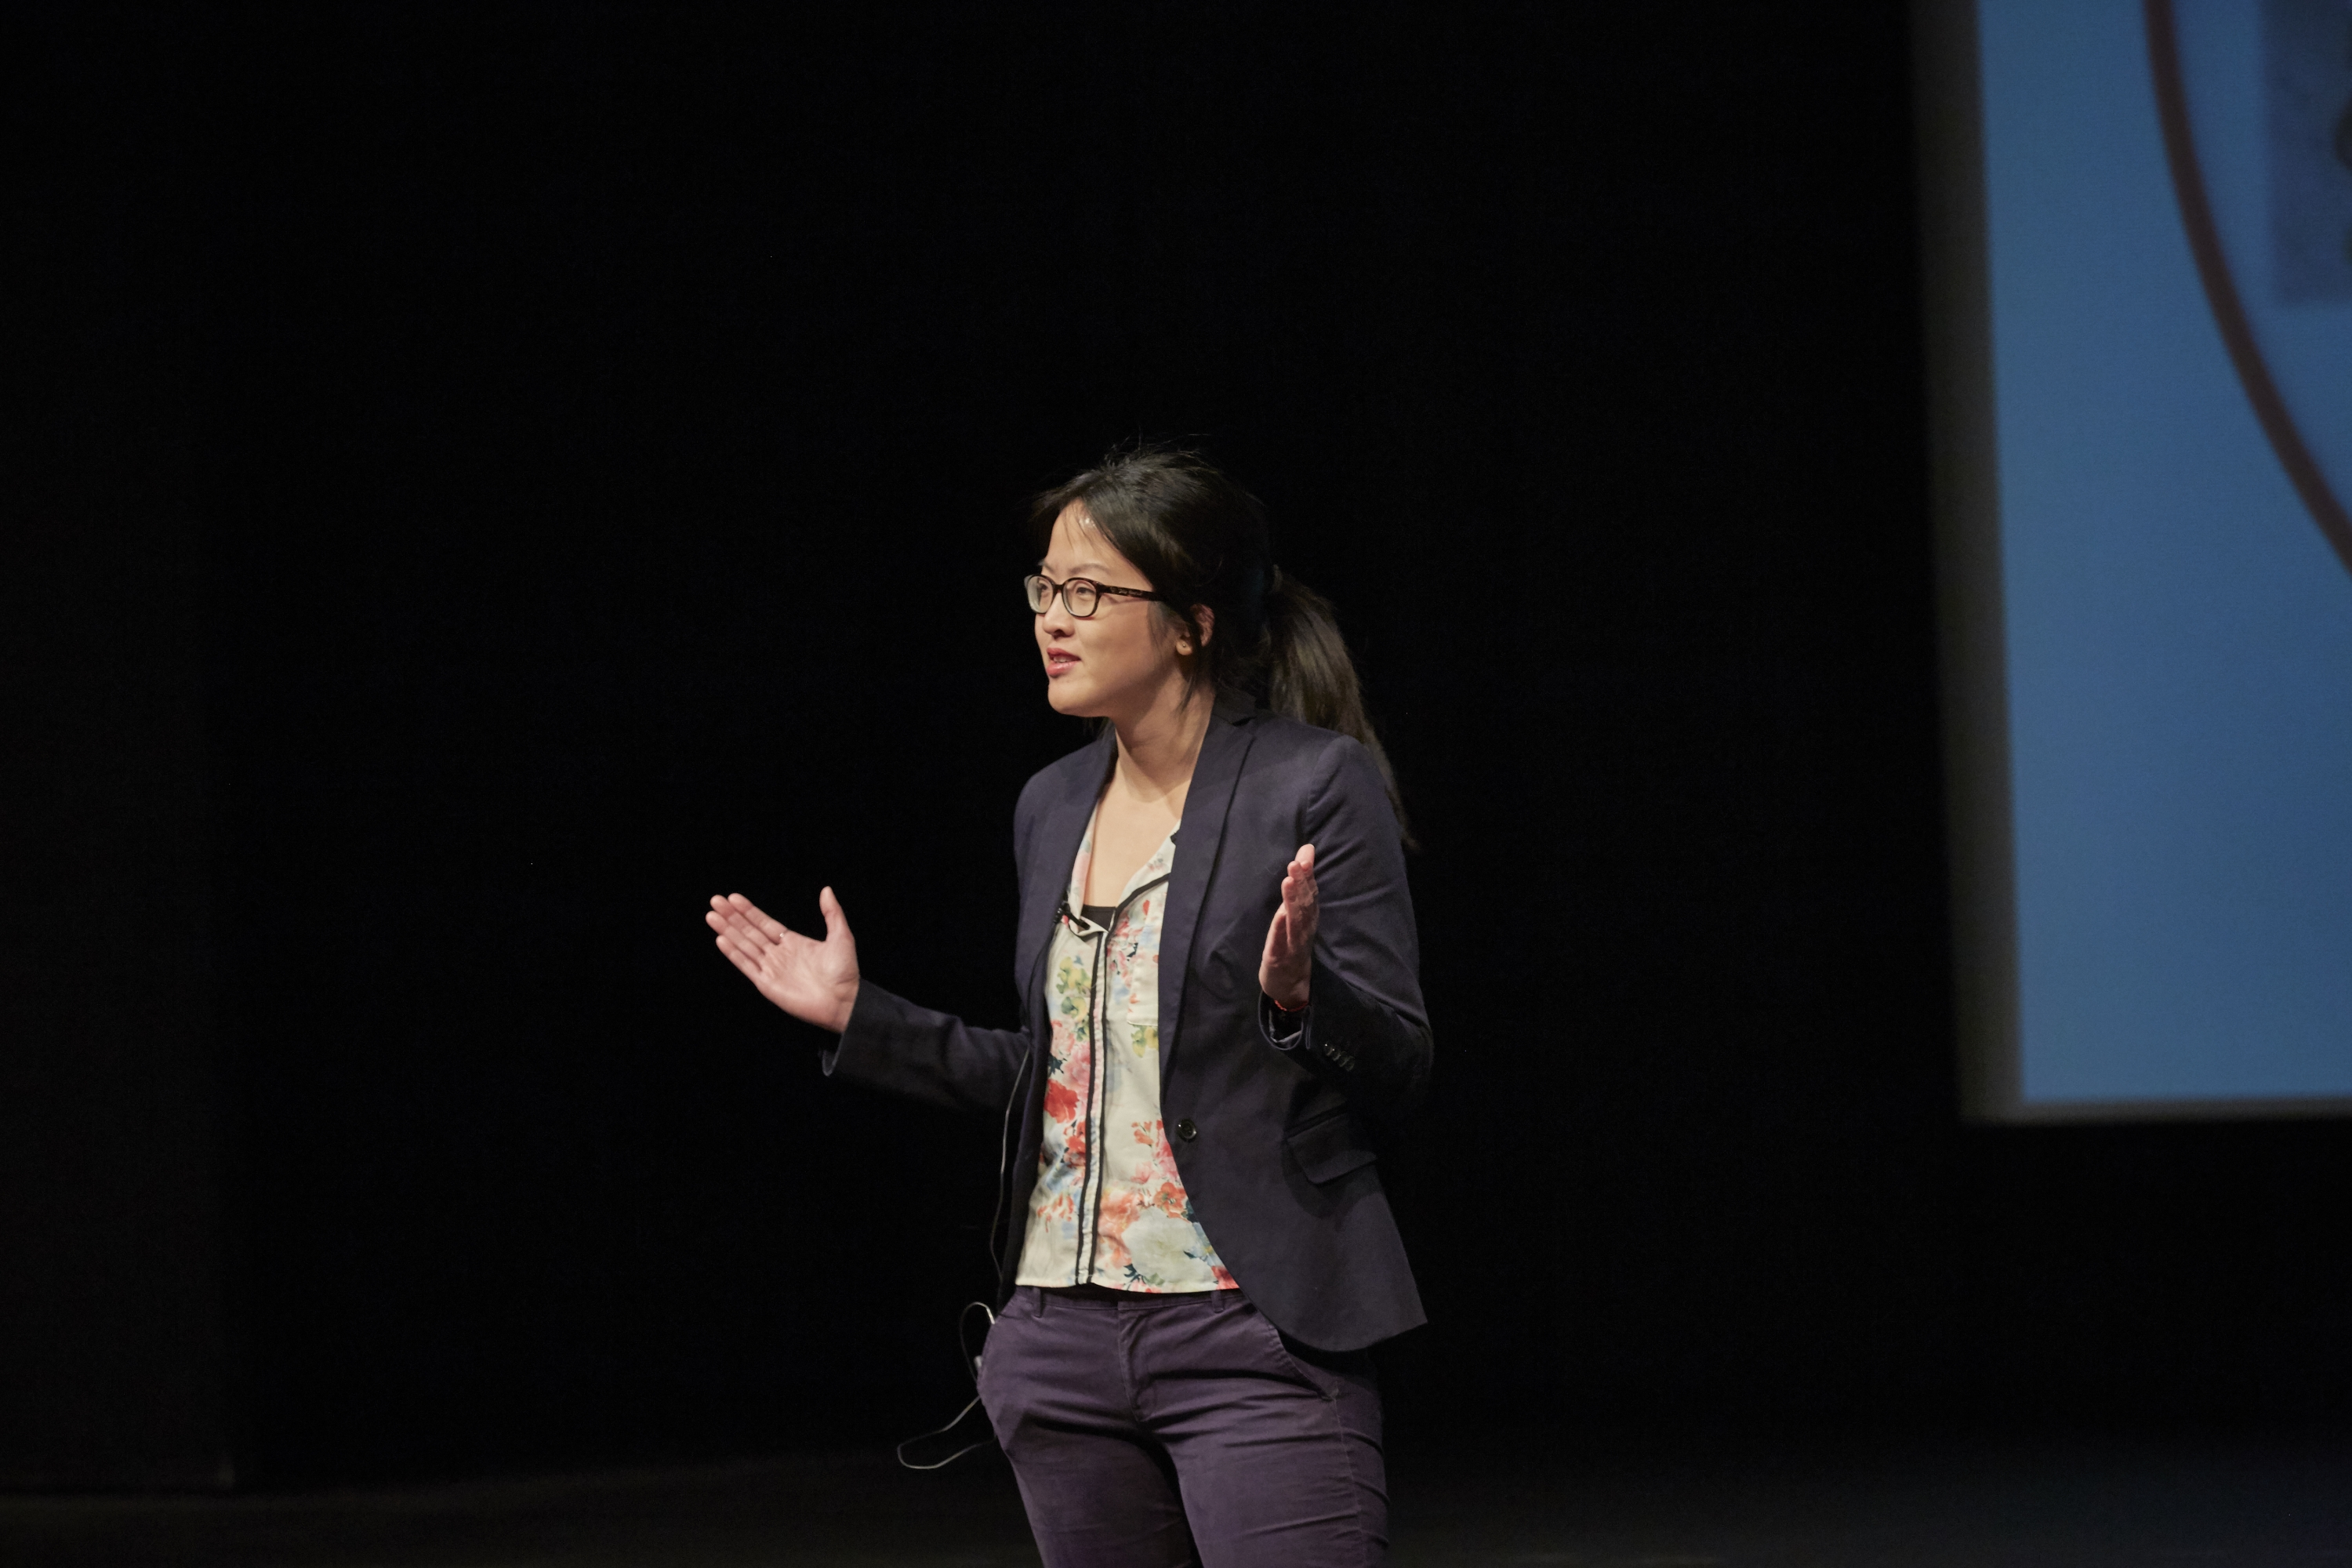 Cheryl Chan competing in 3MT